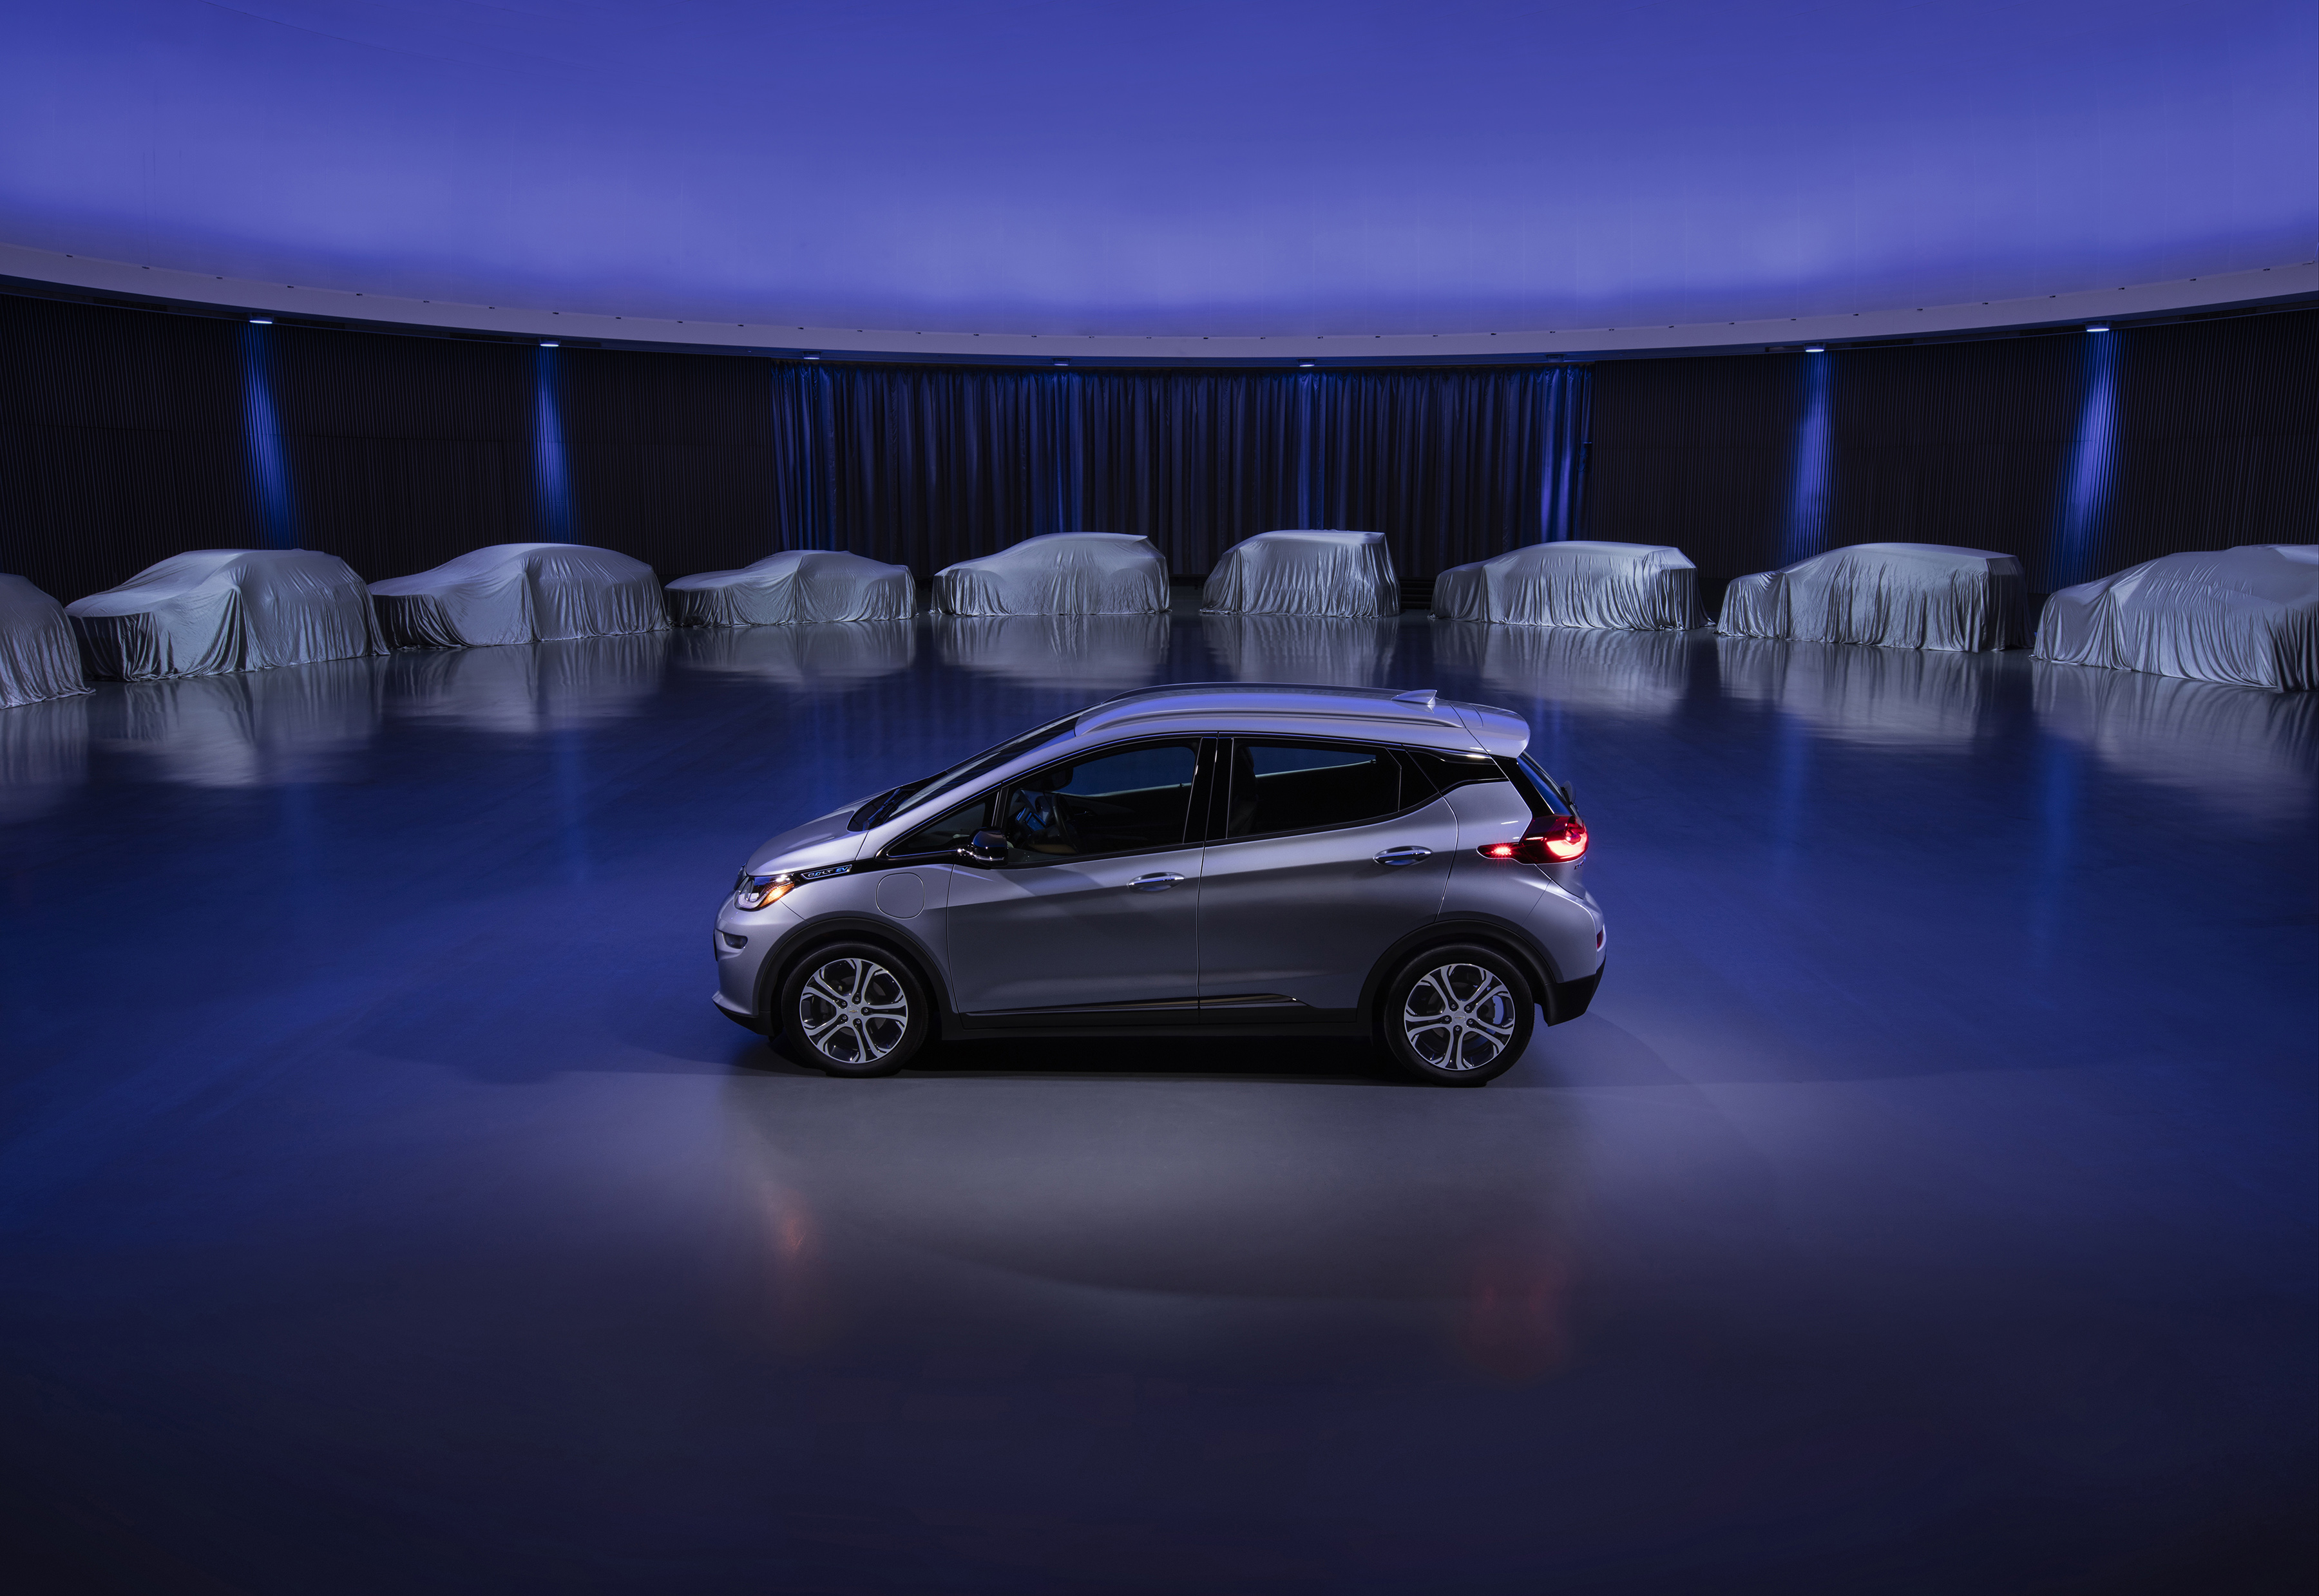 Can General Motors Use Electric Cars To Revolutize American Car Making?